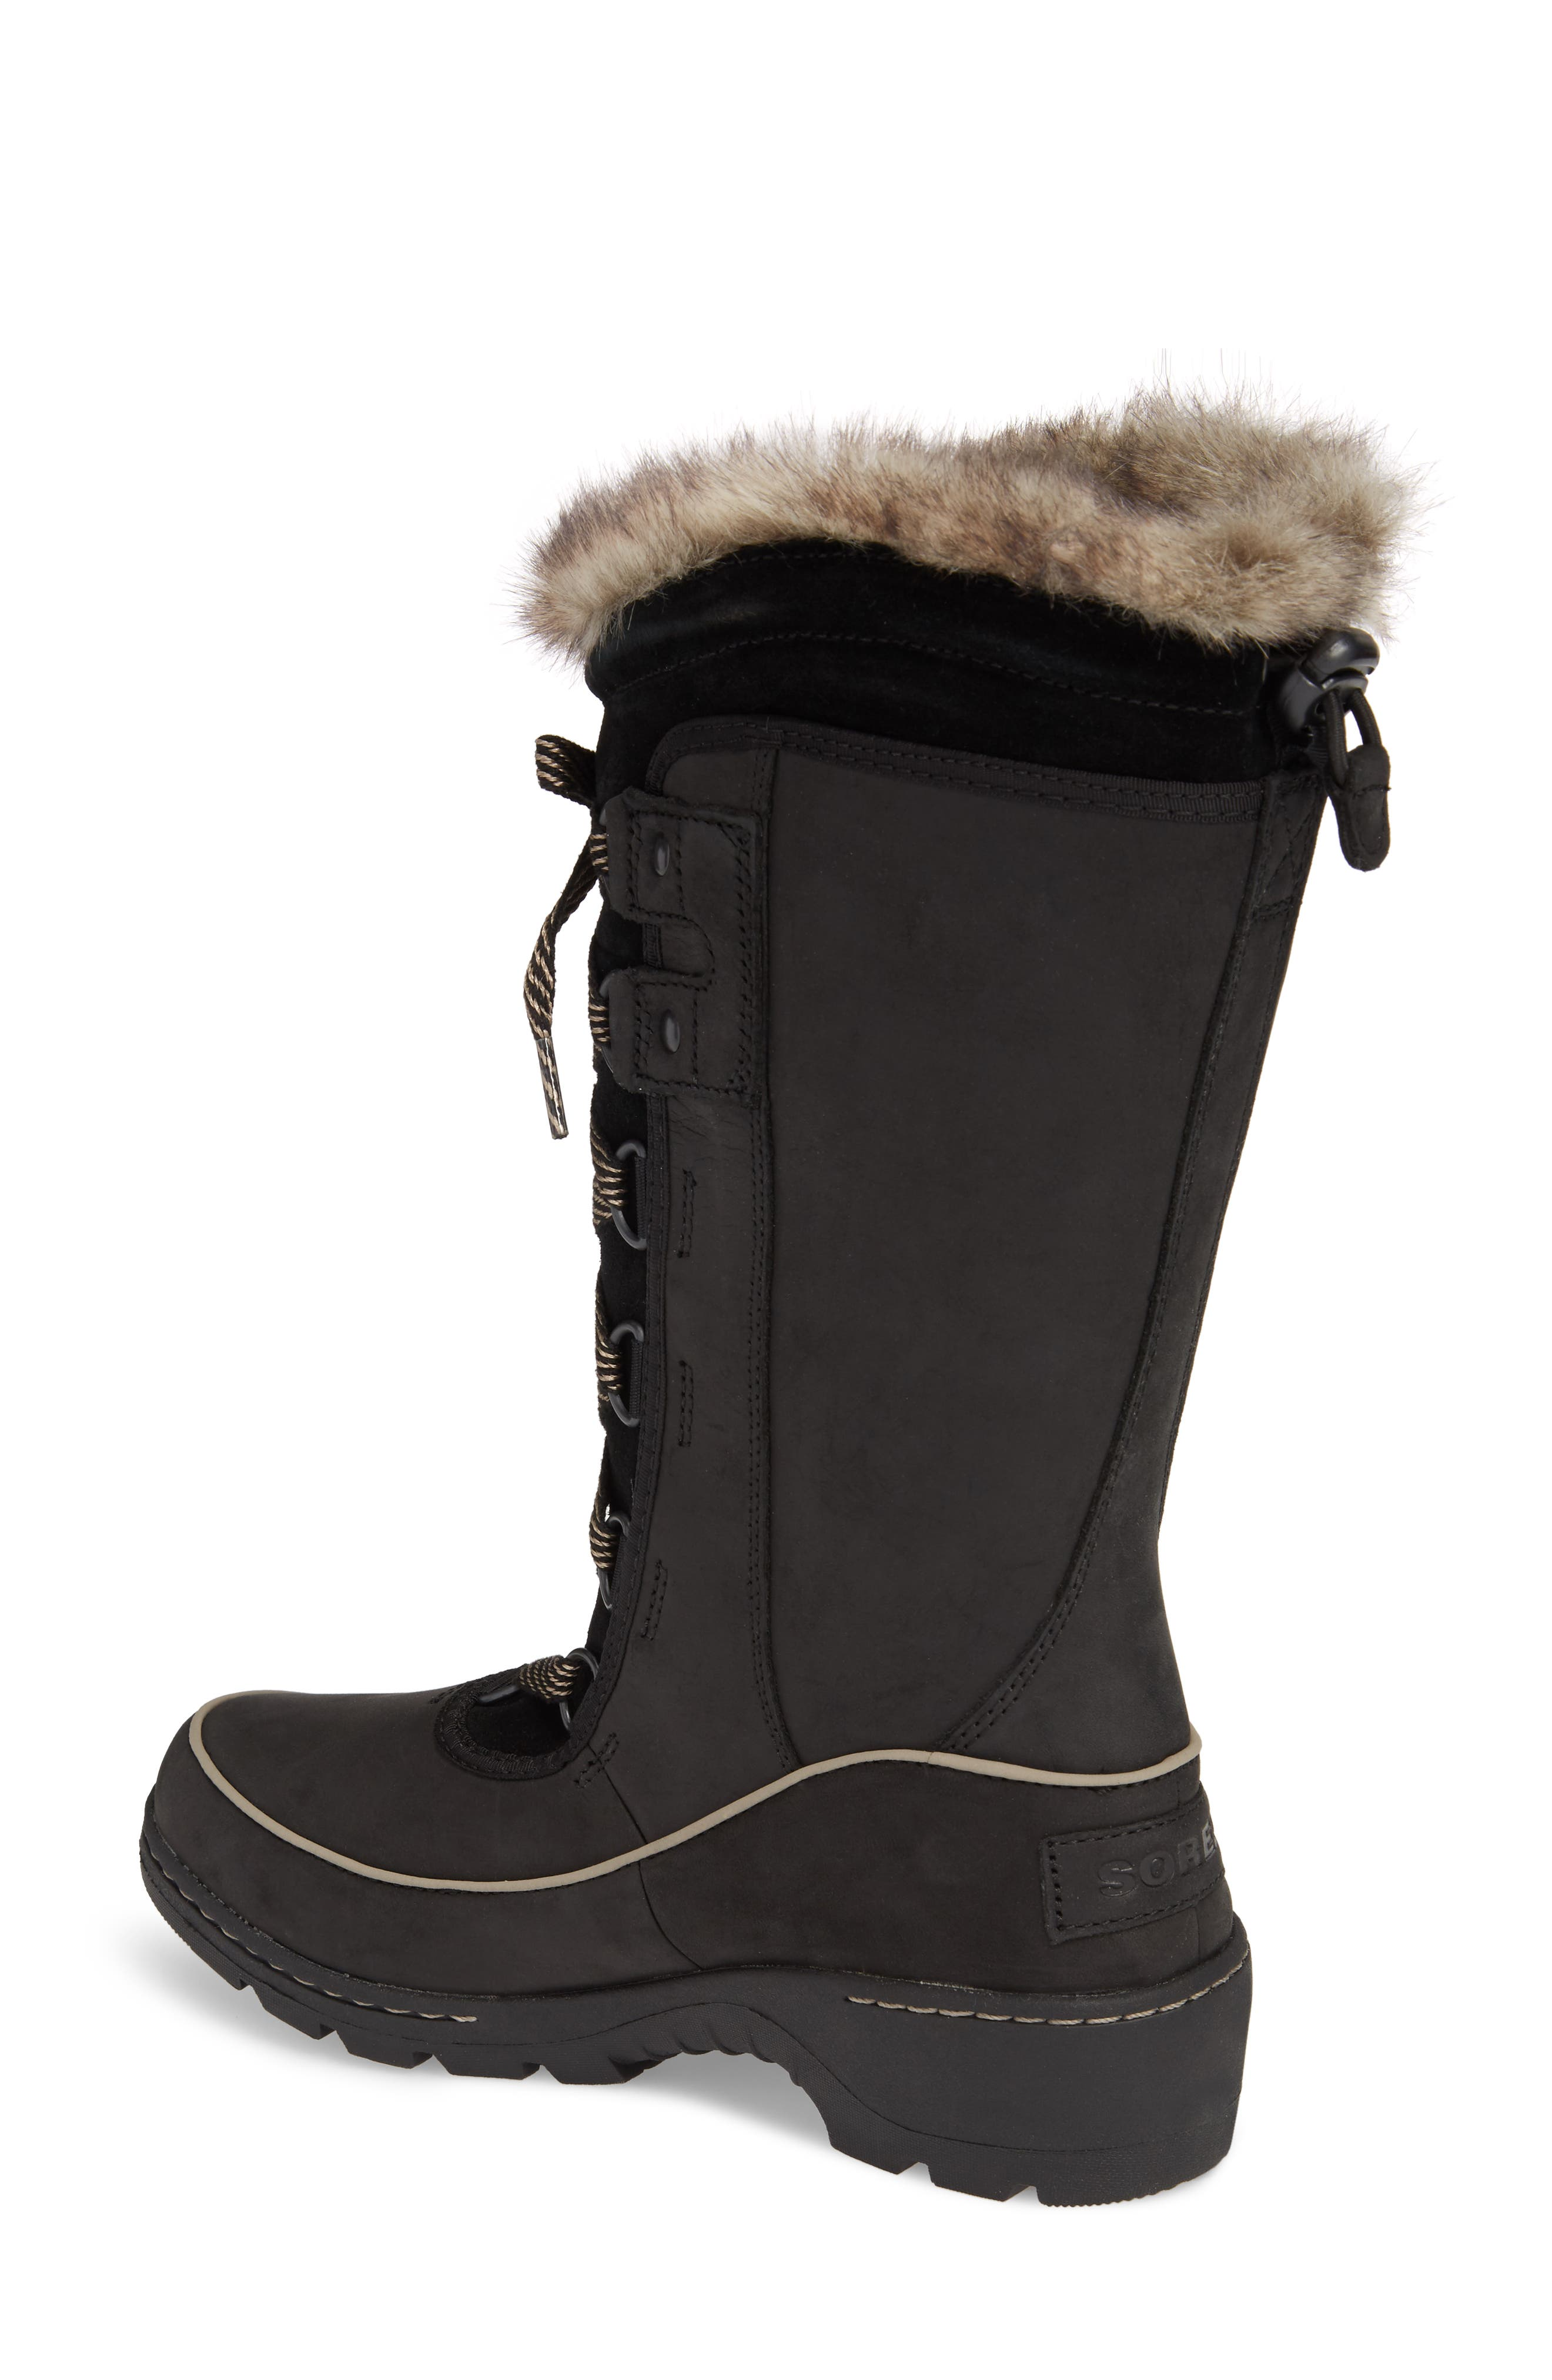 Tivoli II Insulated Winter Boot with Faux Fur Trim,                             Alternate thumbnail 2, color,                             010